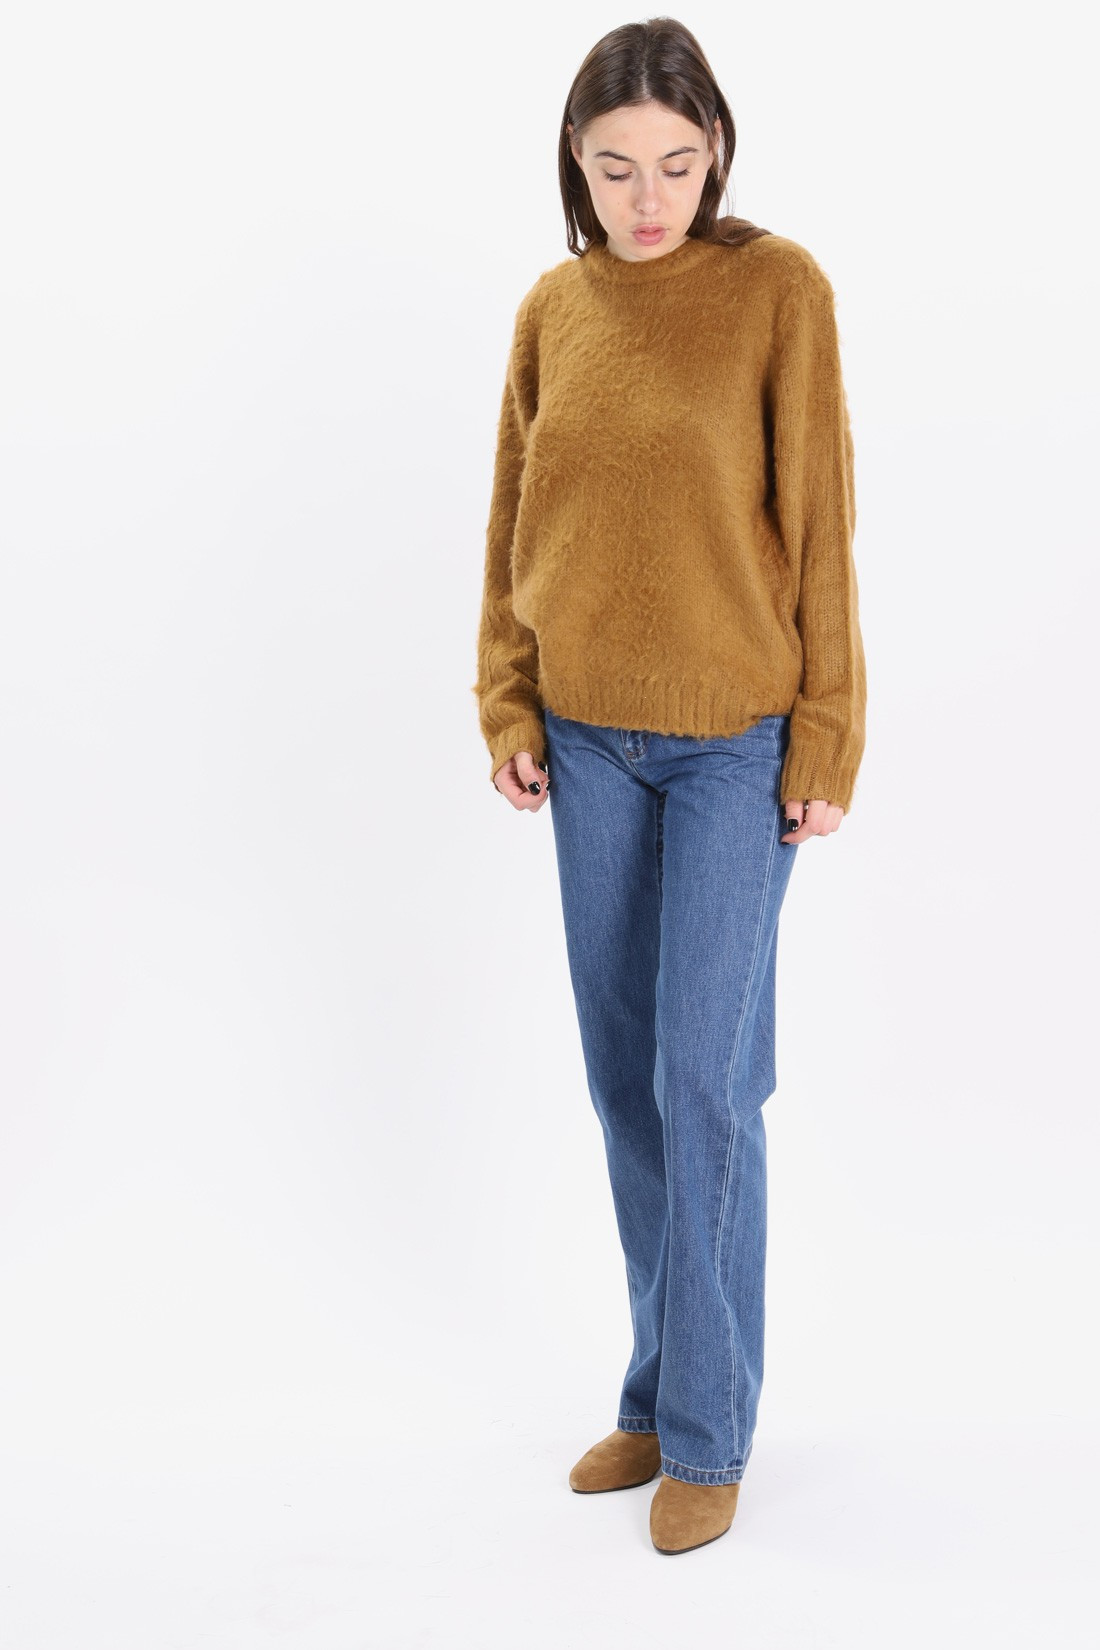 STUSSY FOR WOMAN / Vivian crew sweater Brown